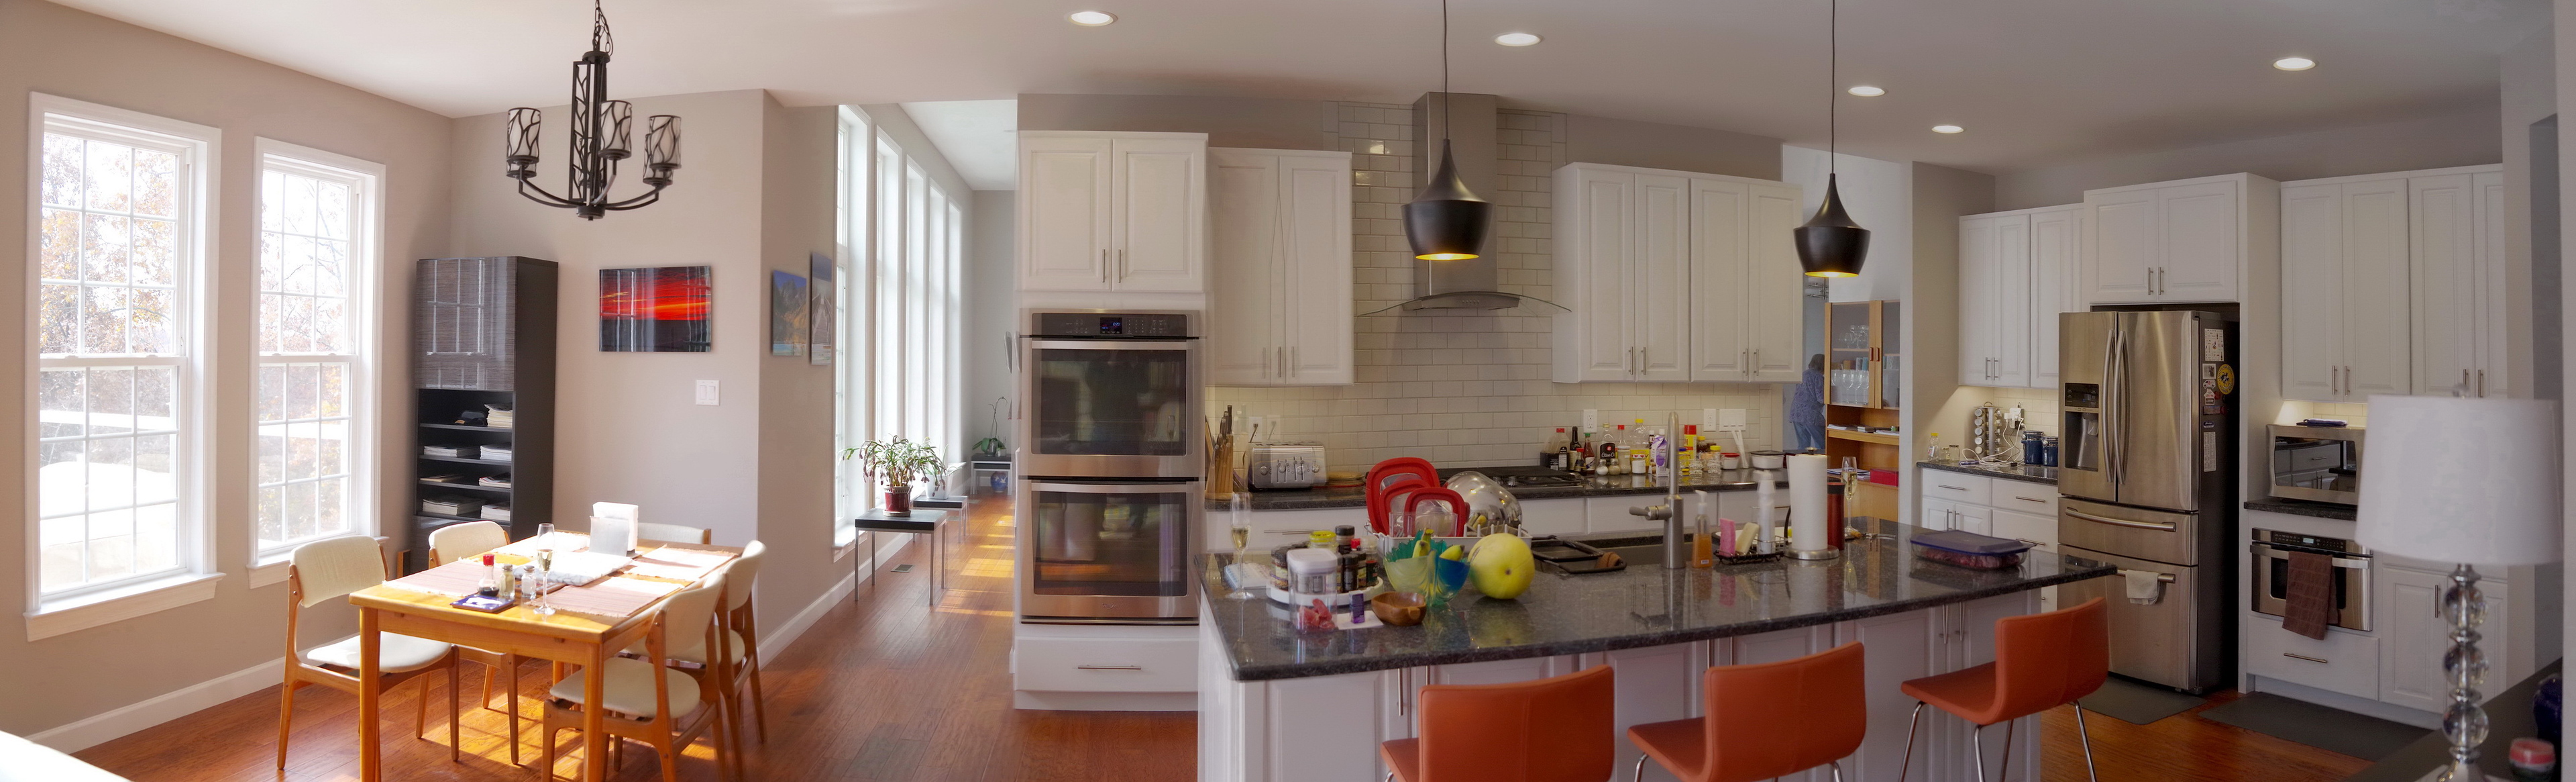 Now that's a KITCHEN